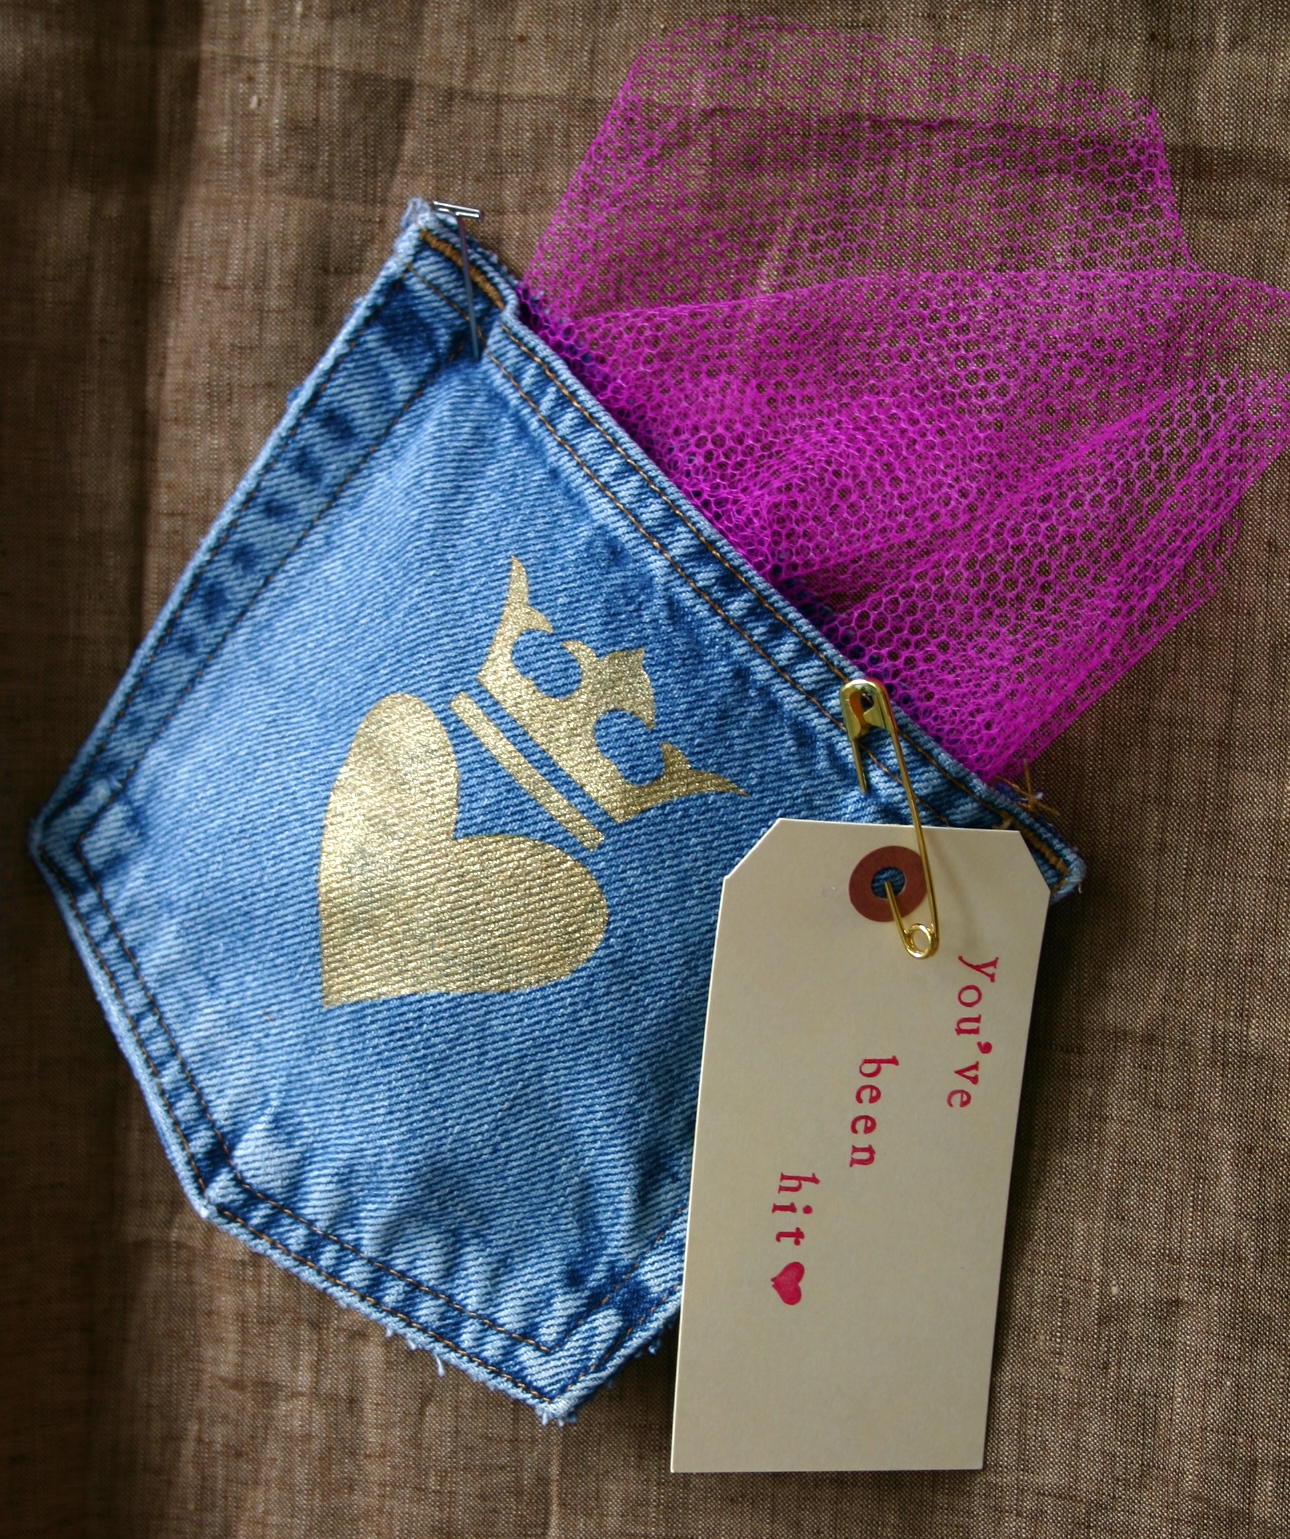 The back pocket from a pair of jeans is used to make Valentine's Day goody bag.